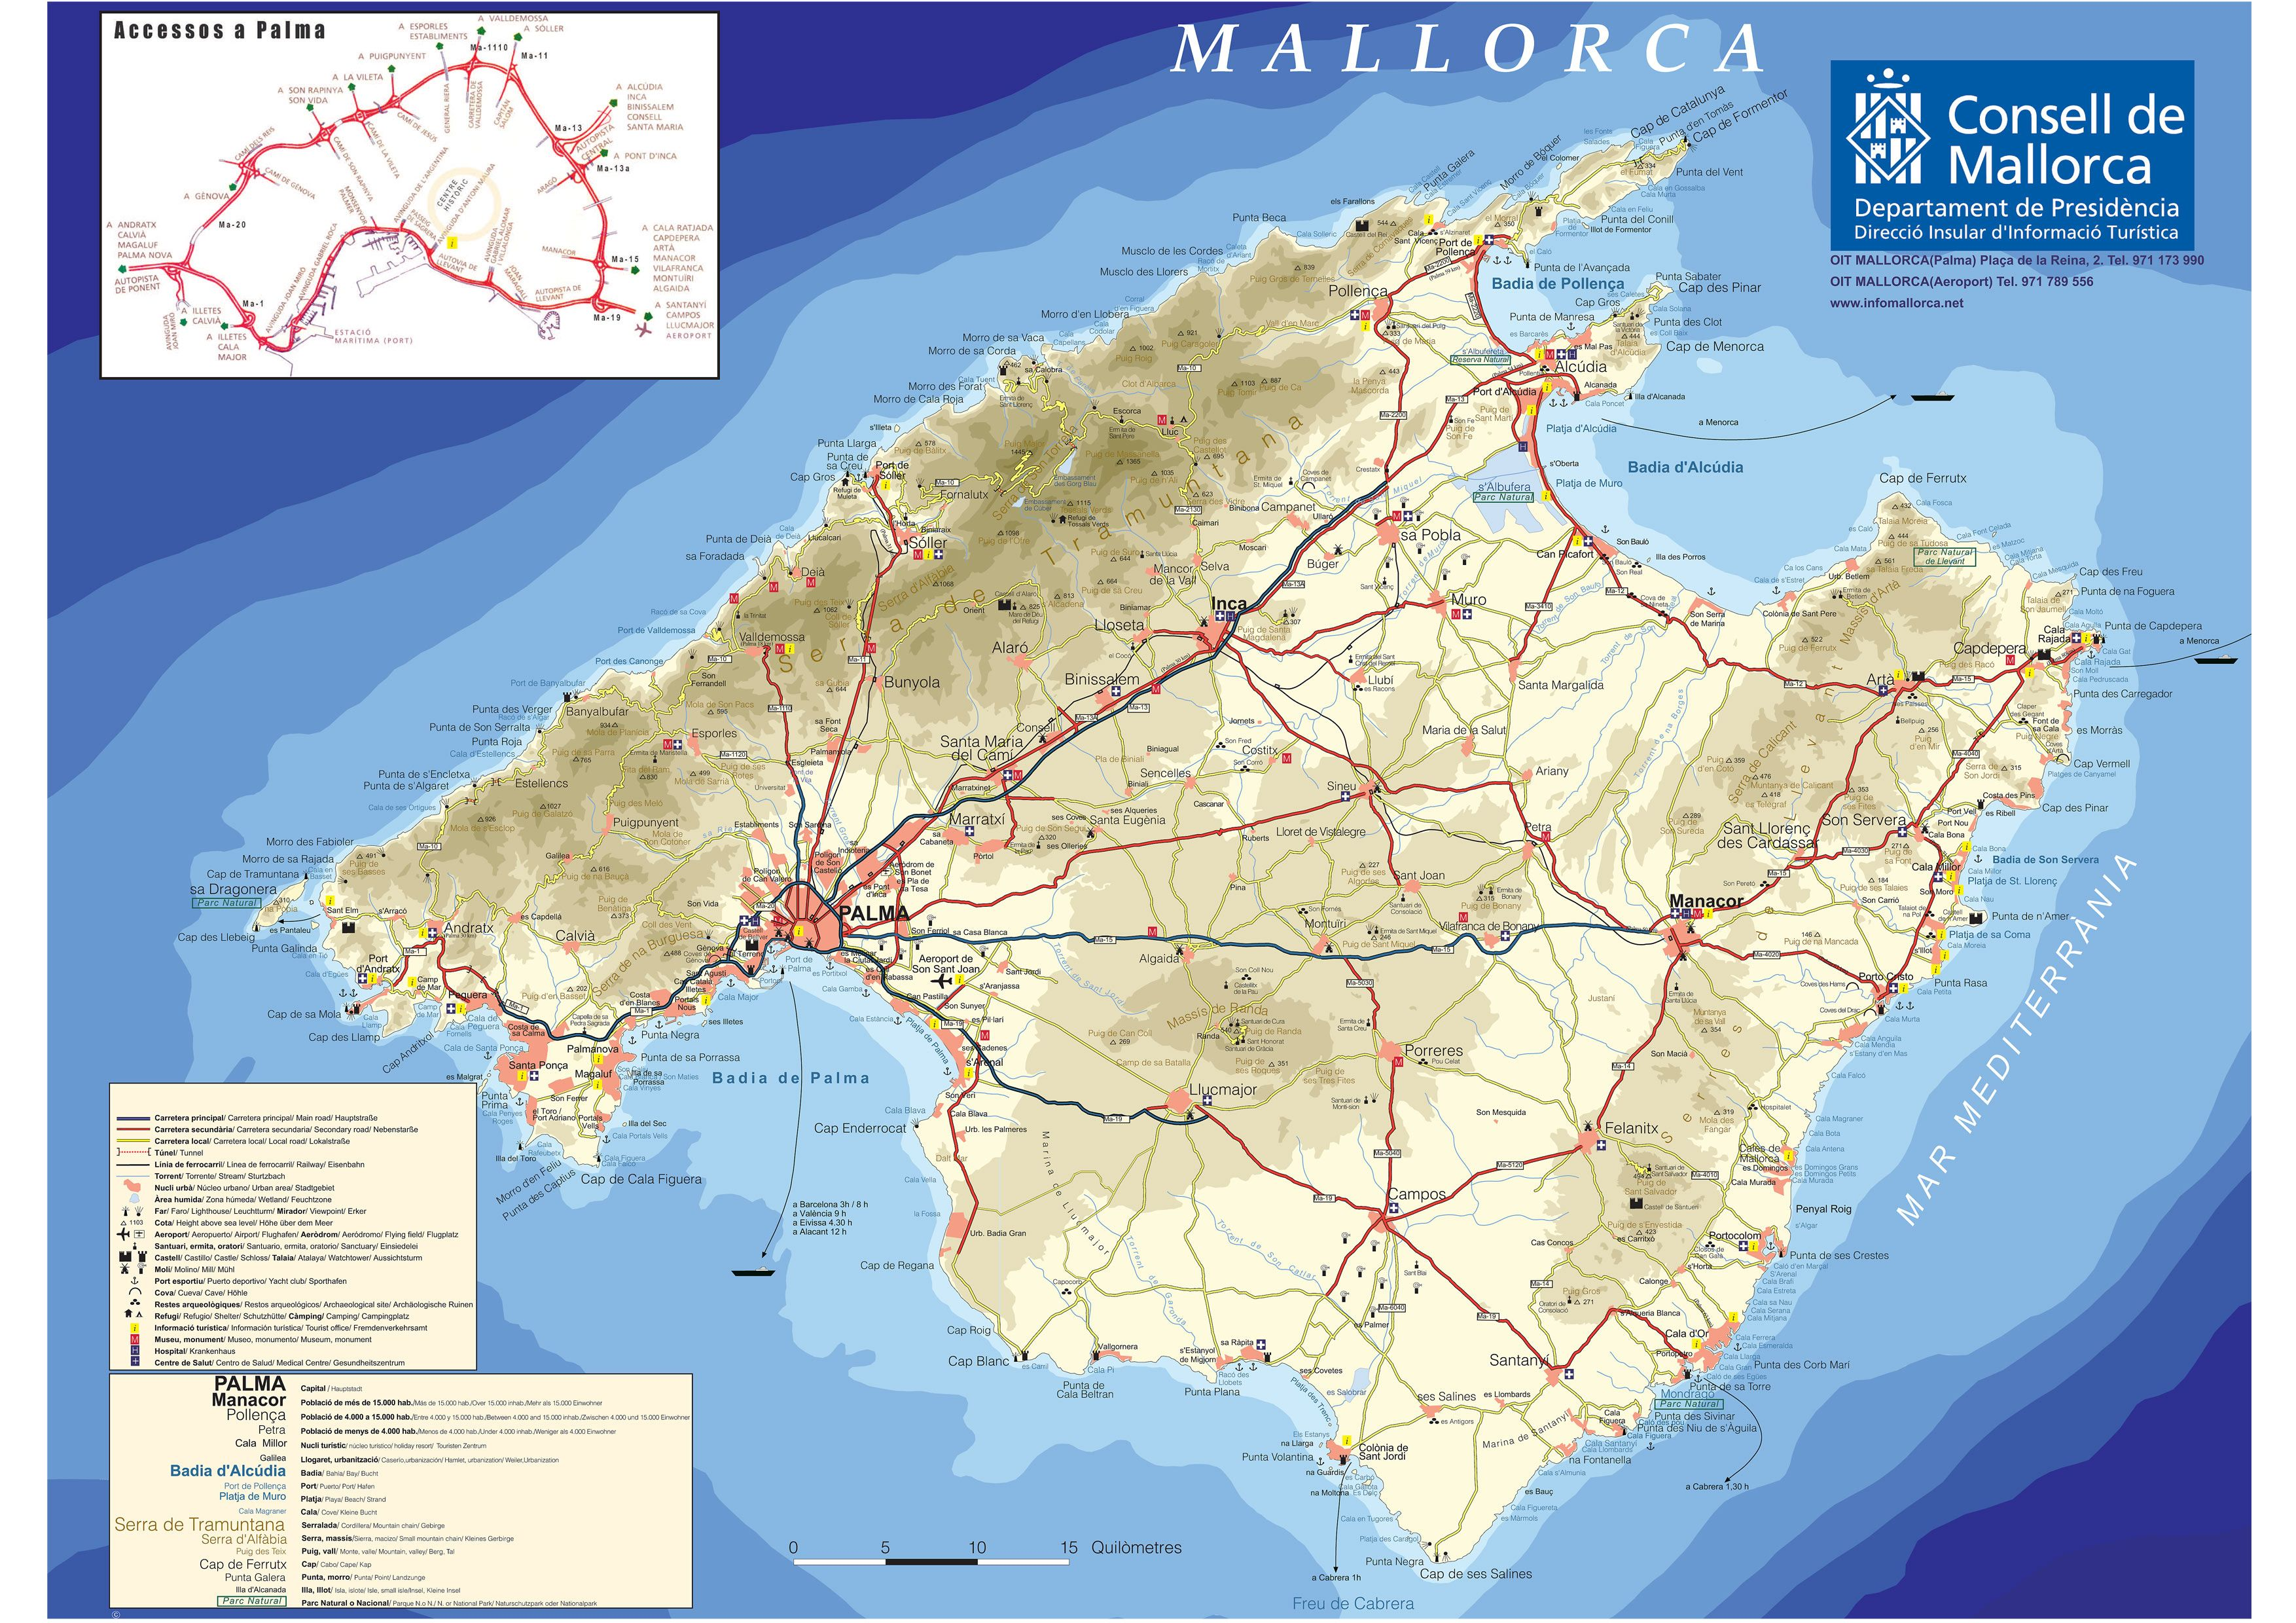 A very useful map of Mallorca Majorca for the tourist showing all